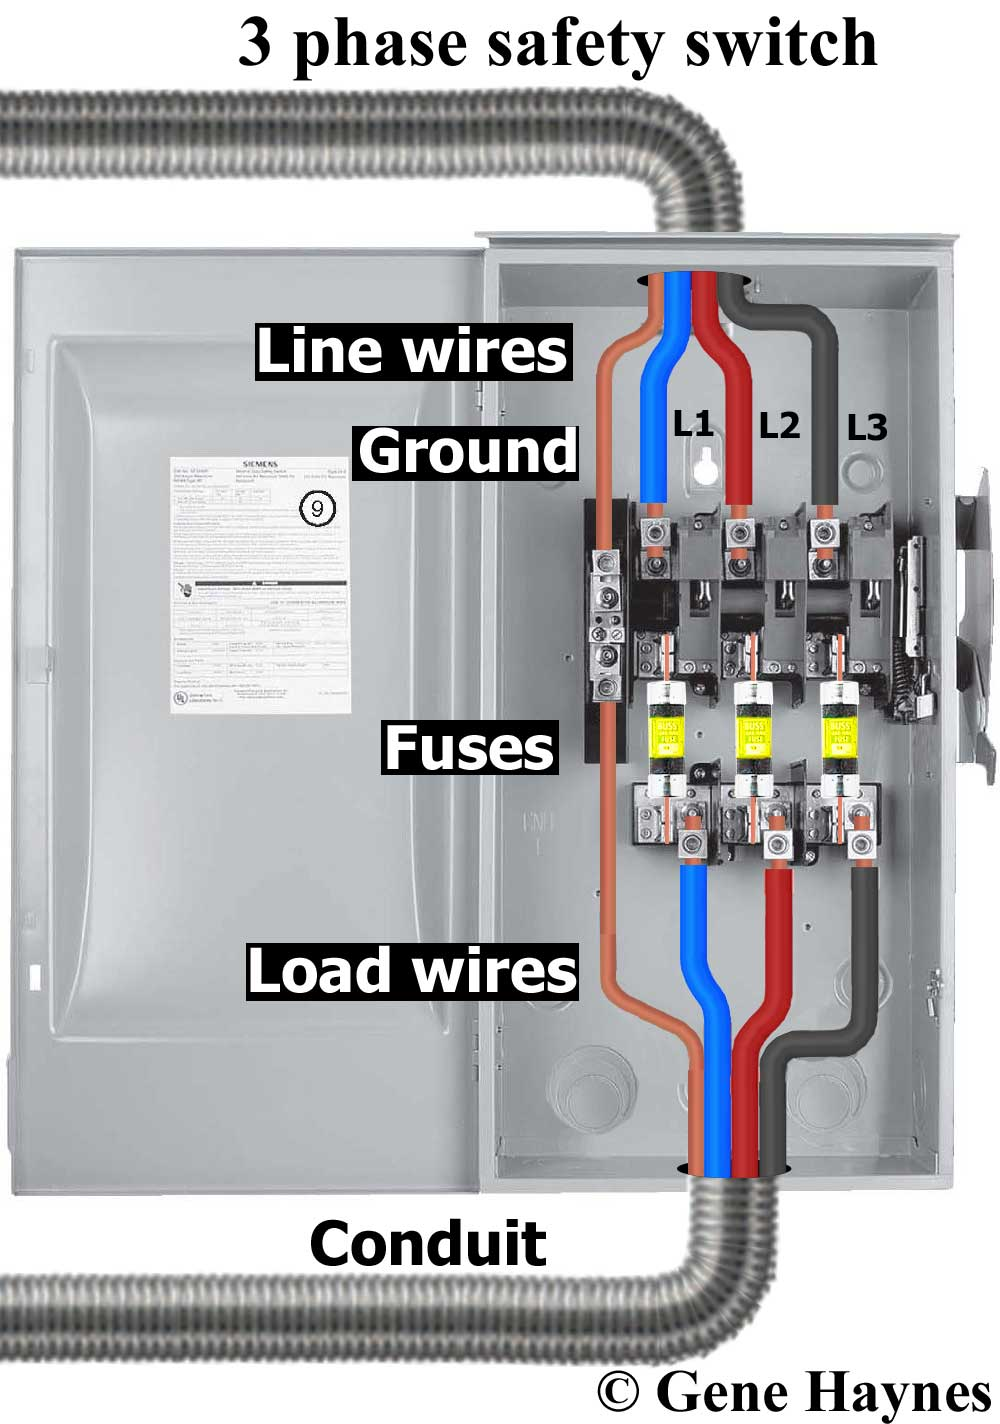 Circuit Breaker Wiring 3 Phase 4 Wire Residential Electrical Symbols 208 Volt Diagram Together With Generator How To Safety Switch Rh Waterheatertimer Org Delta Colors